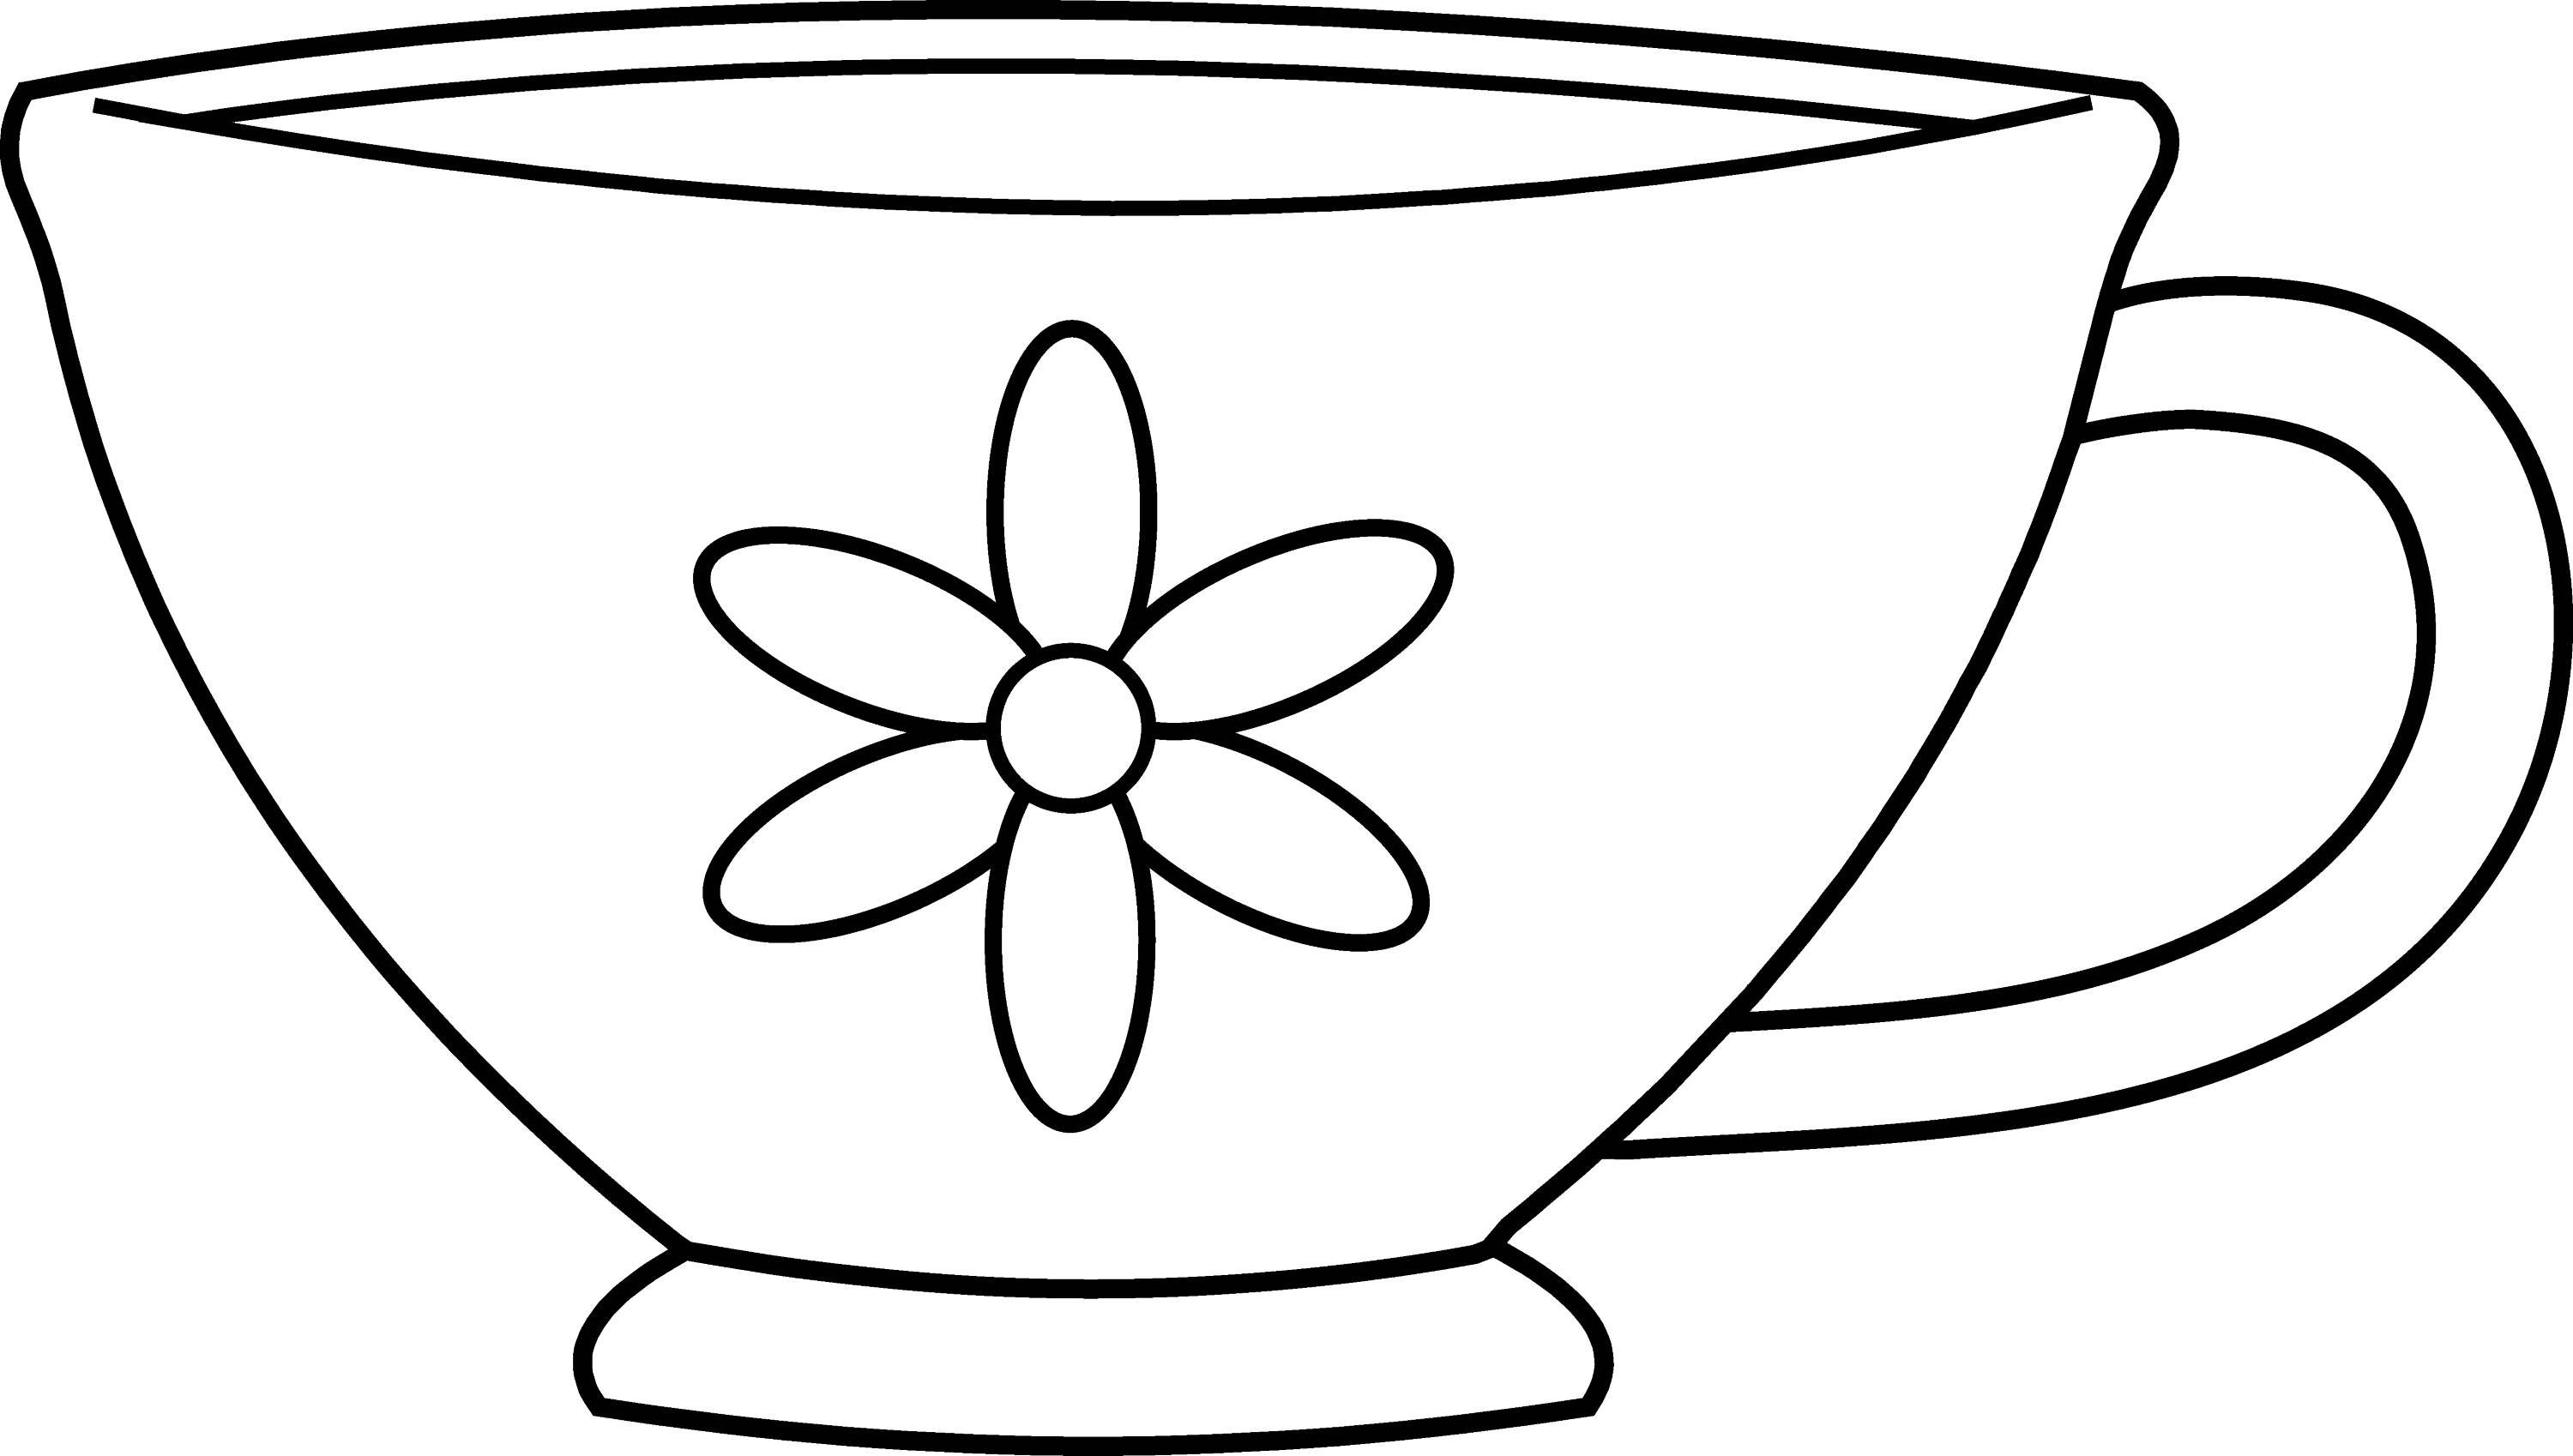 printable tea cup coloring pages - photo#11